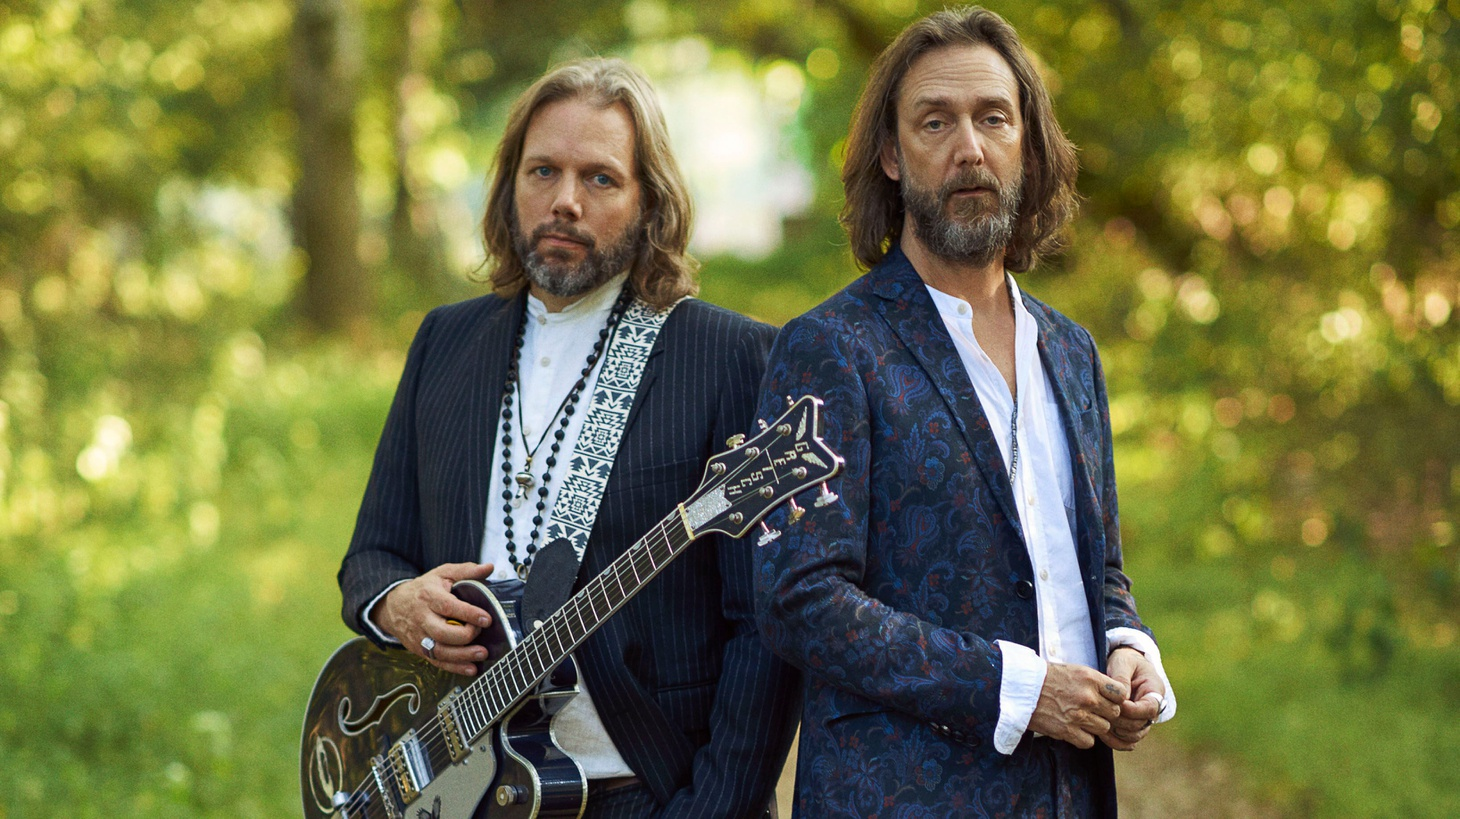 2020 will mark thirty years since The Black Crowes released their debut album Shake Your Money Maker. A newly announced reunion and tour will bring brothers Chris and Rich Robinson back on the road together.